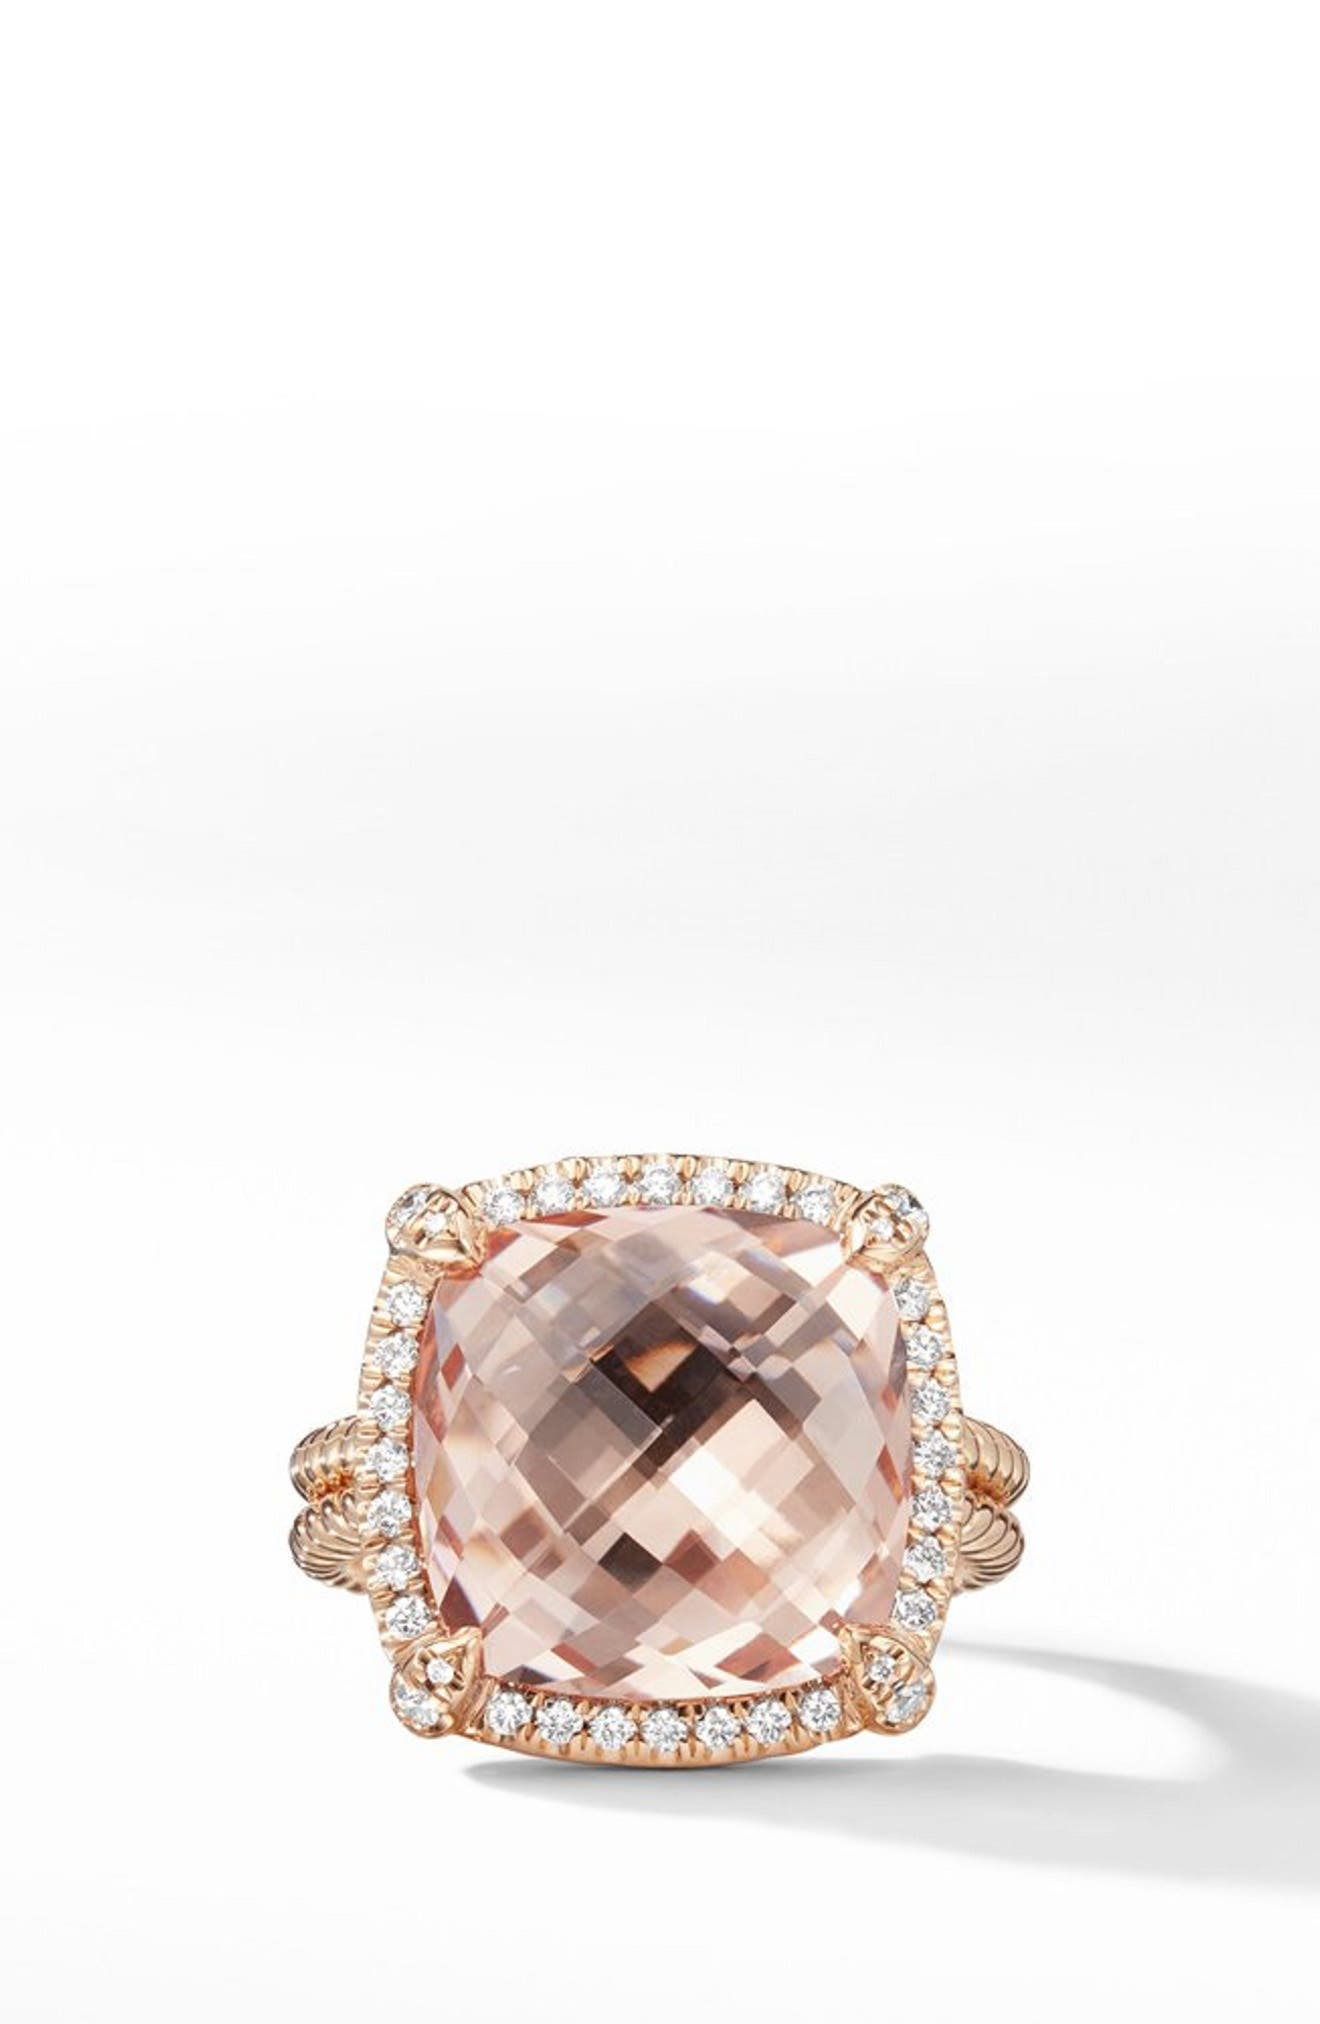 Chatelaine Pavé Bezel Ring in 18K Rose Gold with Morganite,                             Alternate thumbnail 2, color,                             ROSE GOLD/ DIAMOND/ MORGANITE